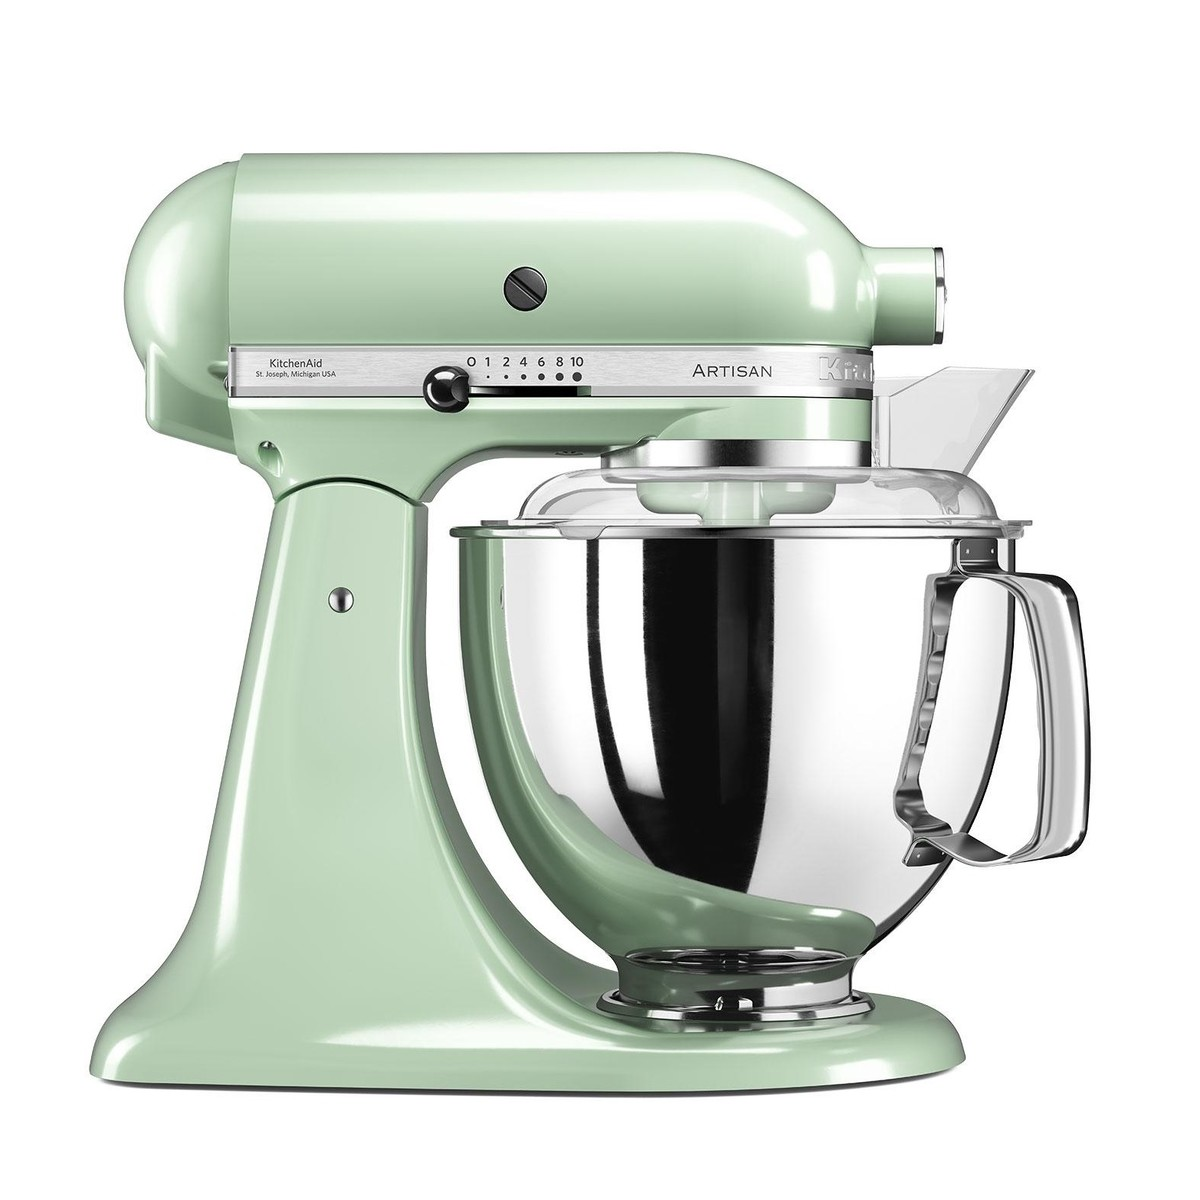 KitchenAid Artisan 5KSM175 Food Processor | KitchenAid ...